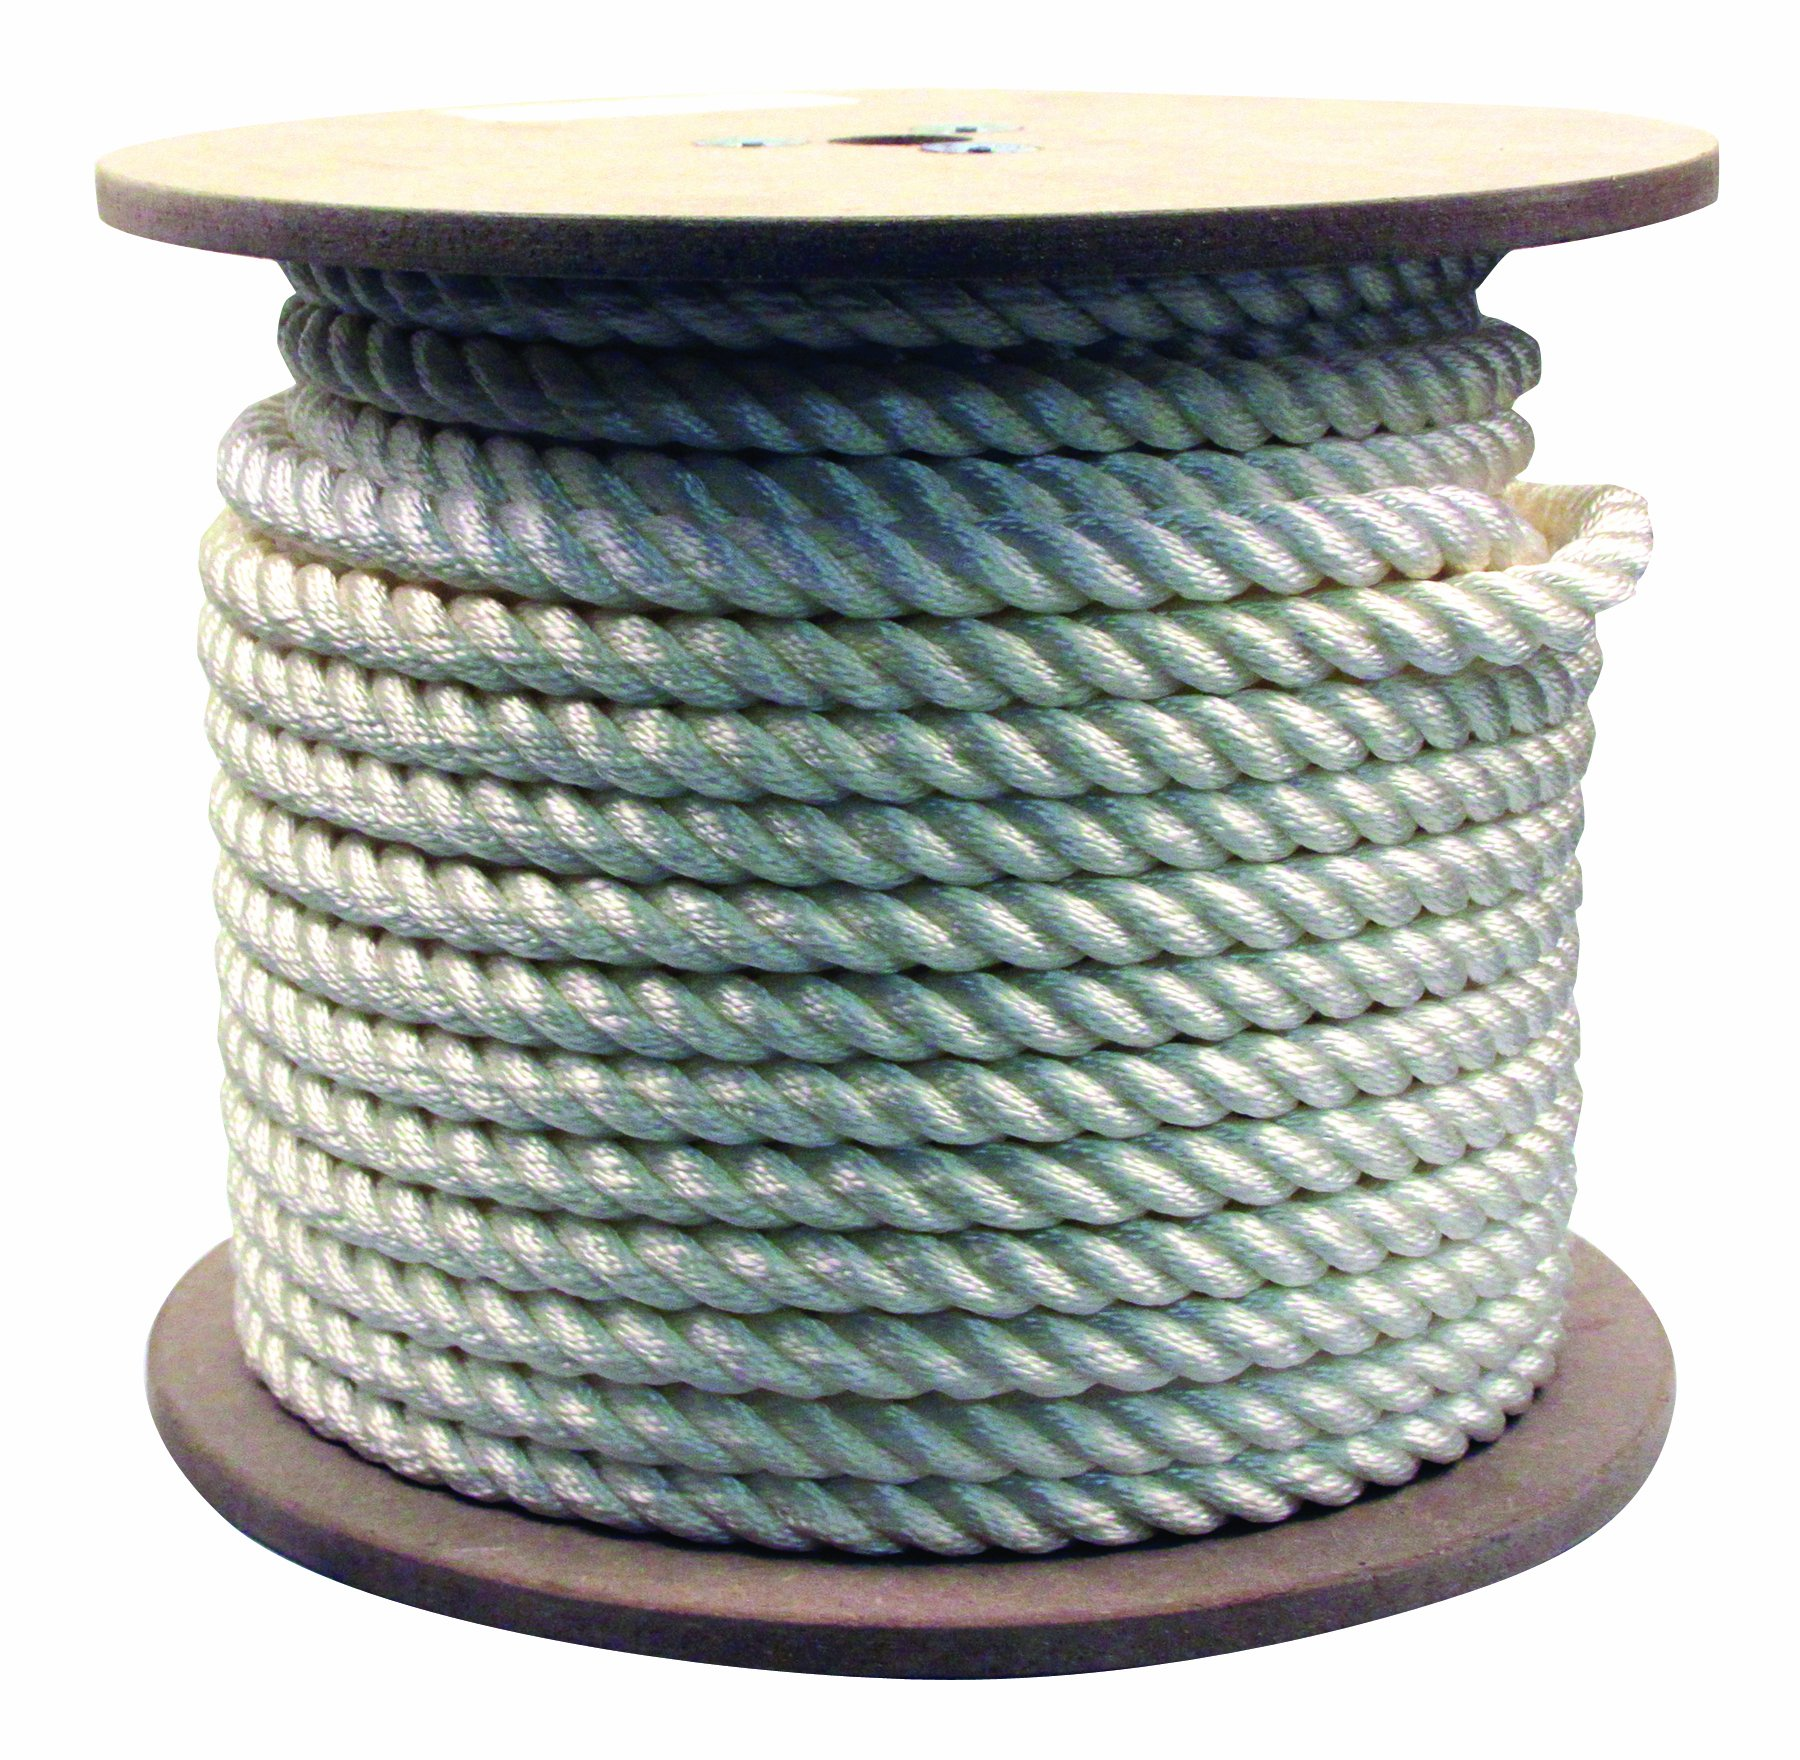 Rope King TN-34200 Twisted Nylon Rope 3/4 inch x 200 feet